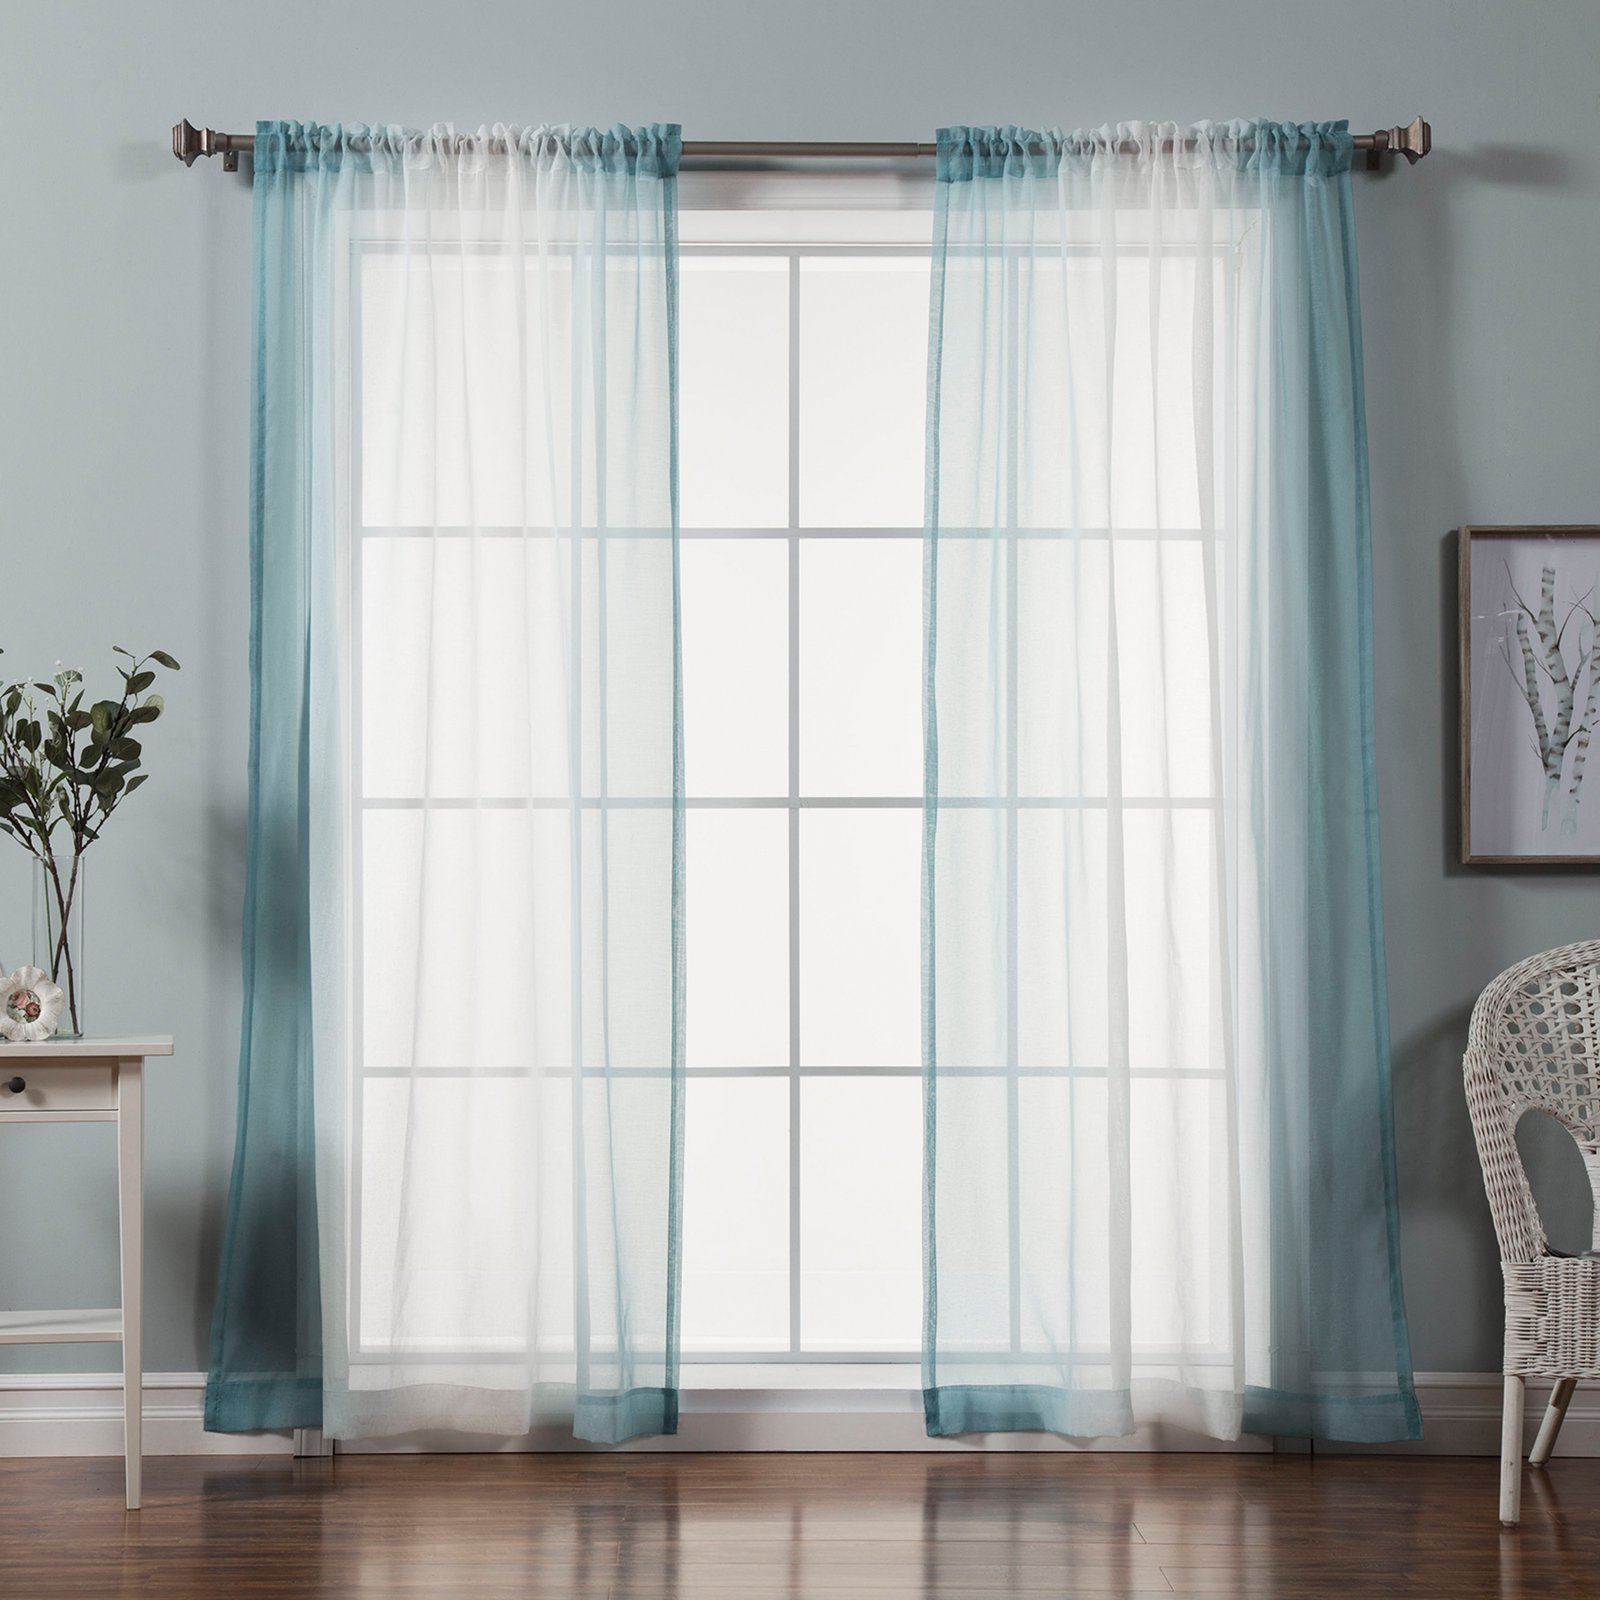 Best Home Fashion Sheer Faux Linen Ombre Border Curtains In Ombre Faux Linen Semi Sheer Curtains (View 15 of 20)